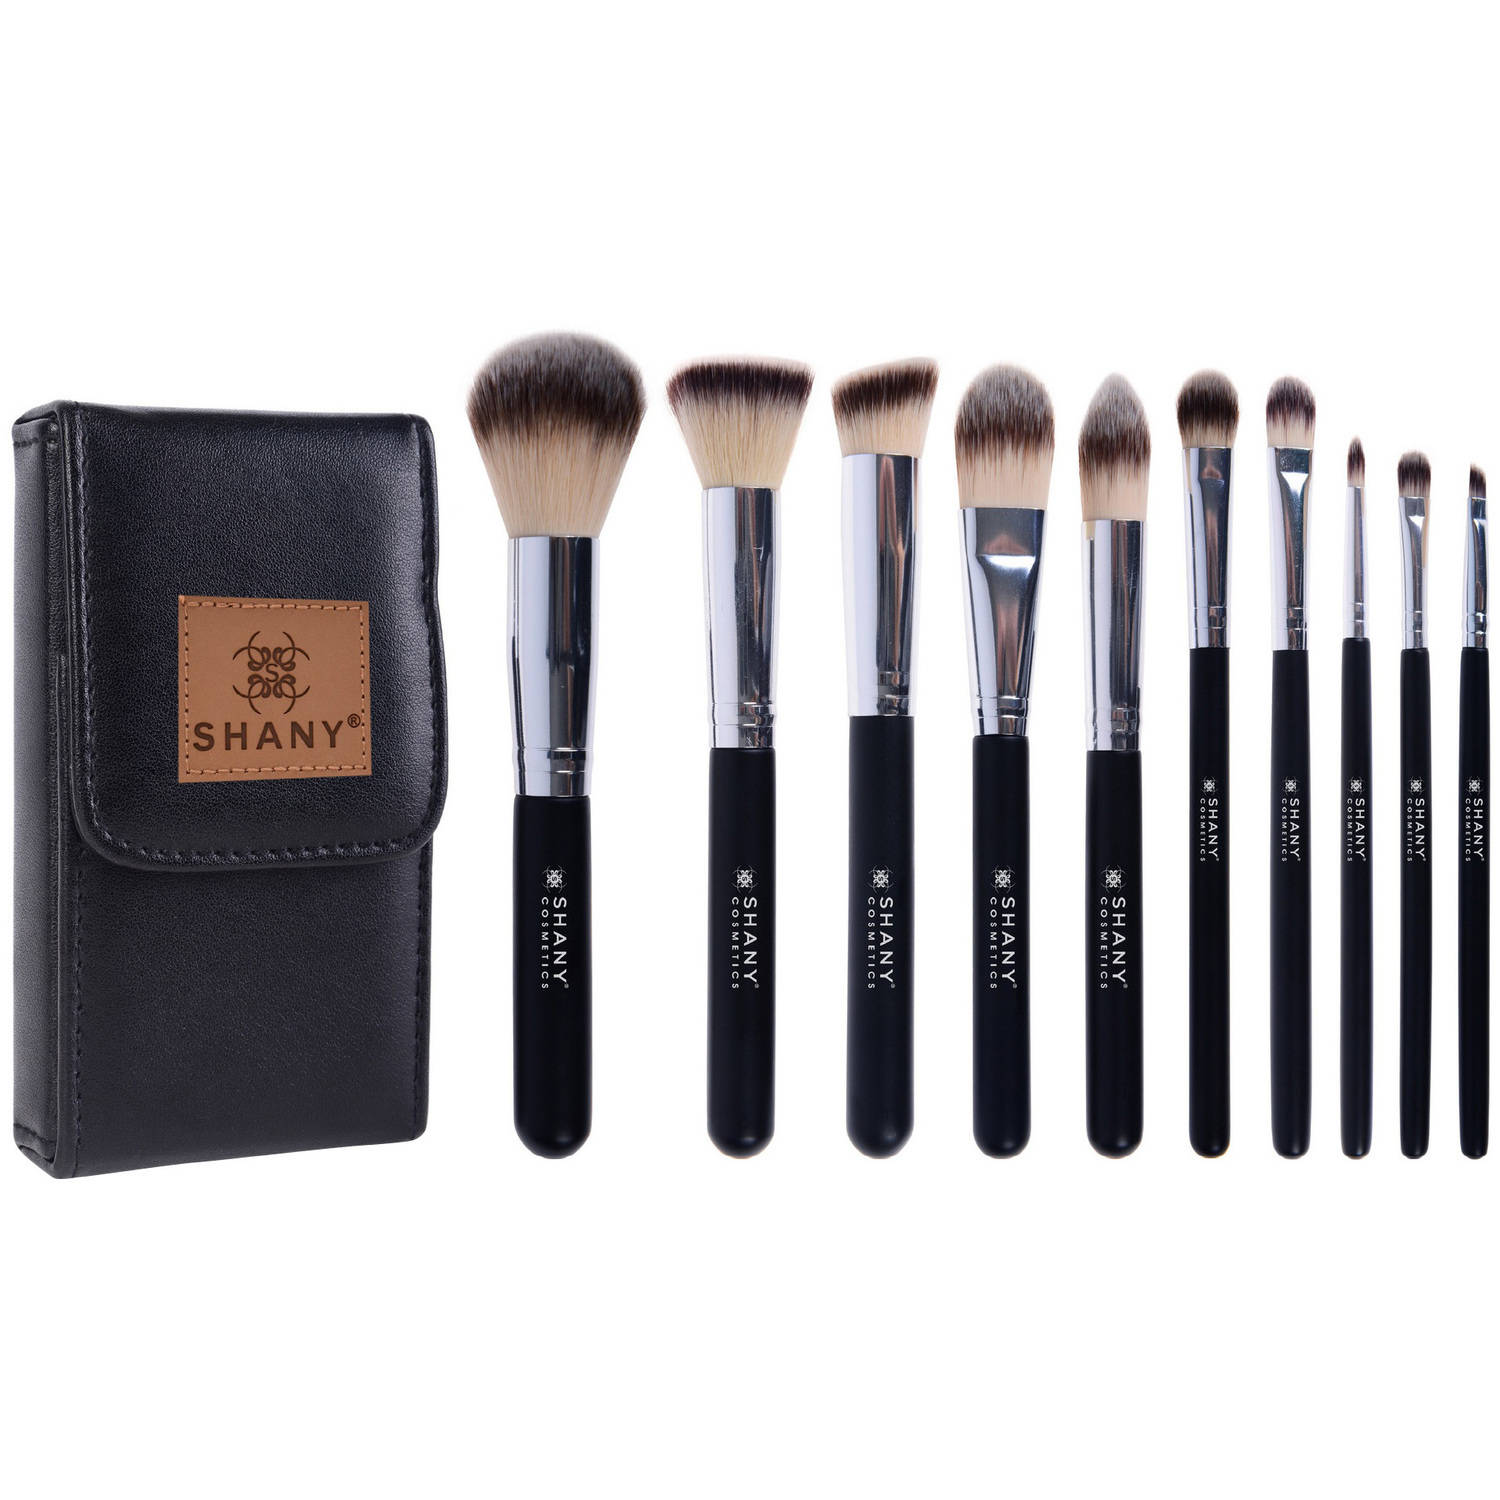 SHANY OMBRE Pro Essential Brush Set, 10 pc